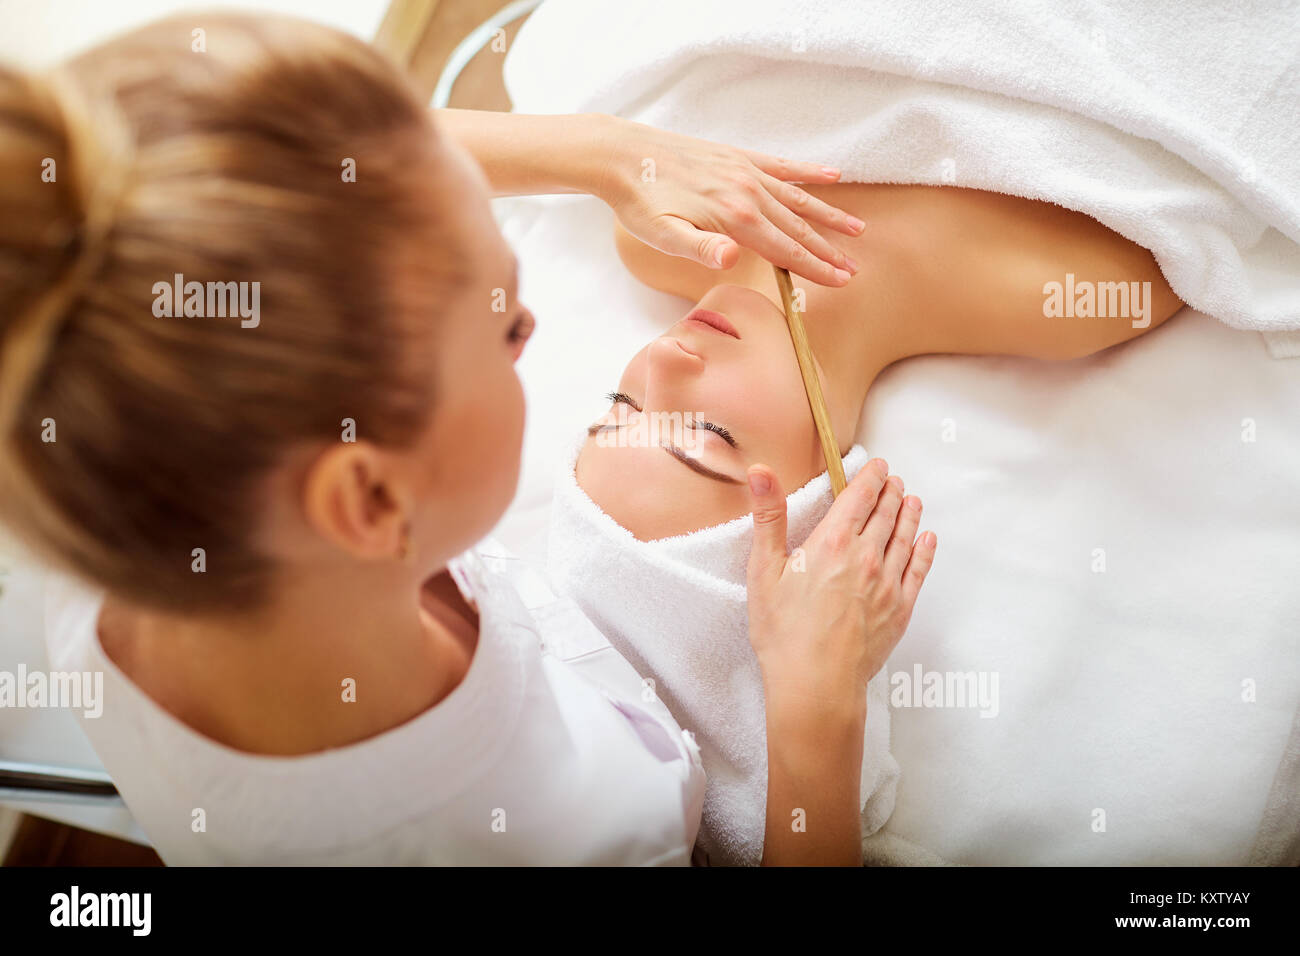 Massage face woman stone therapy. - Stock Image